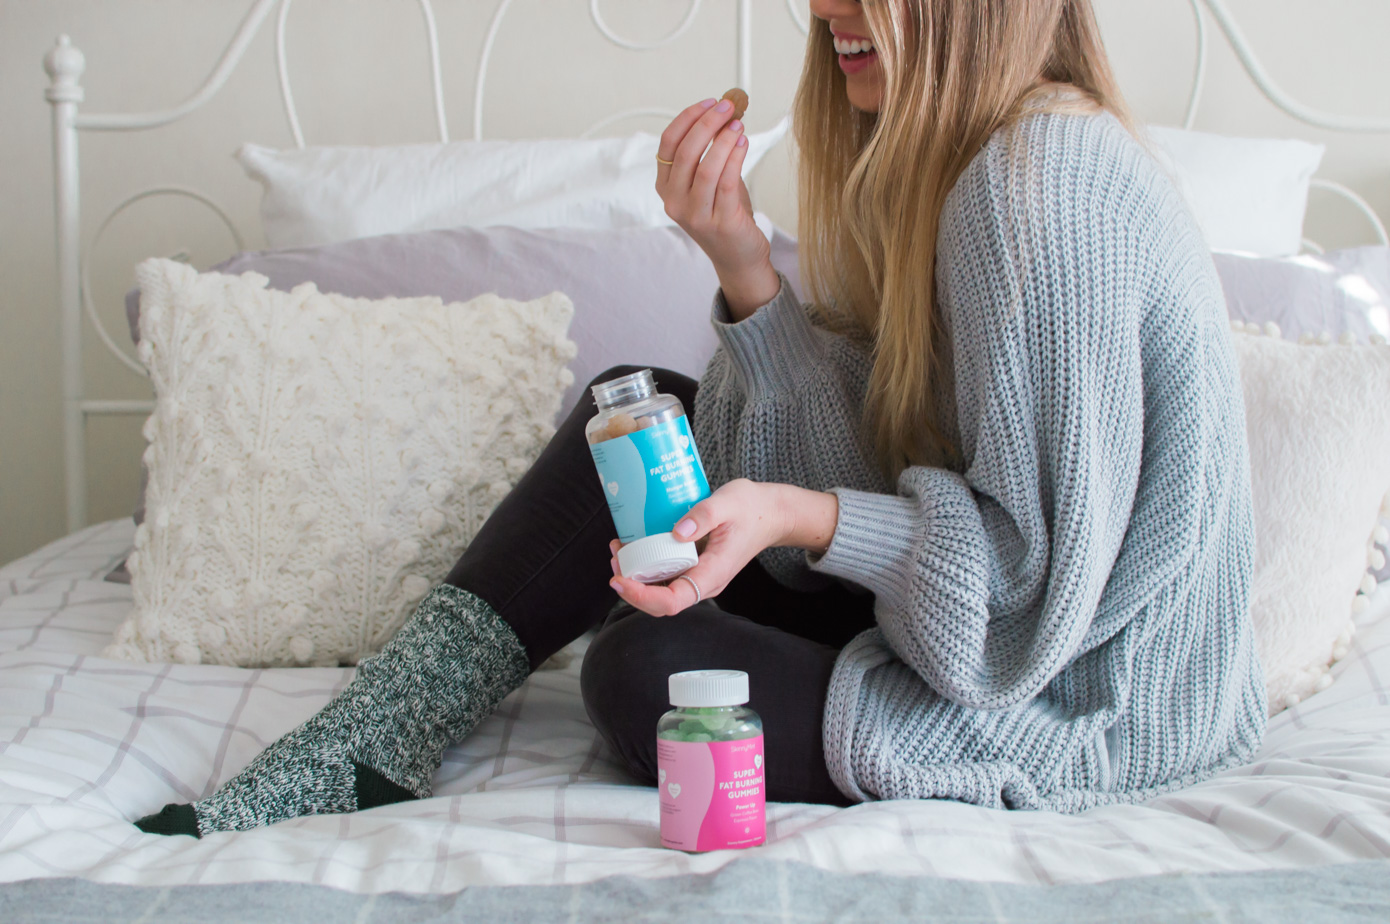 Healthier Lifestyle | SkinnyMint Super Fat Burning Gummies Review | Louella Reese Life & Style Blog